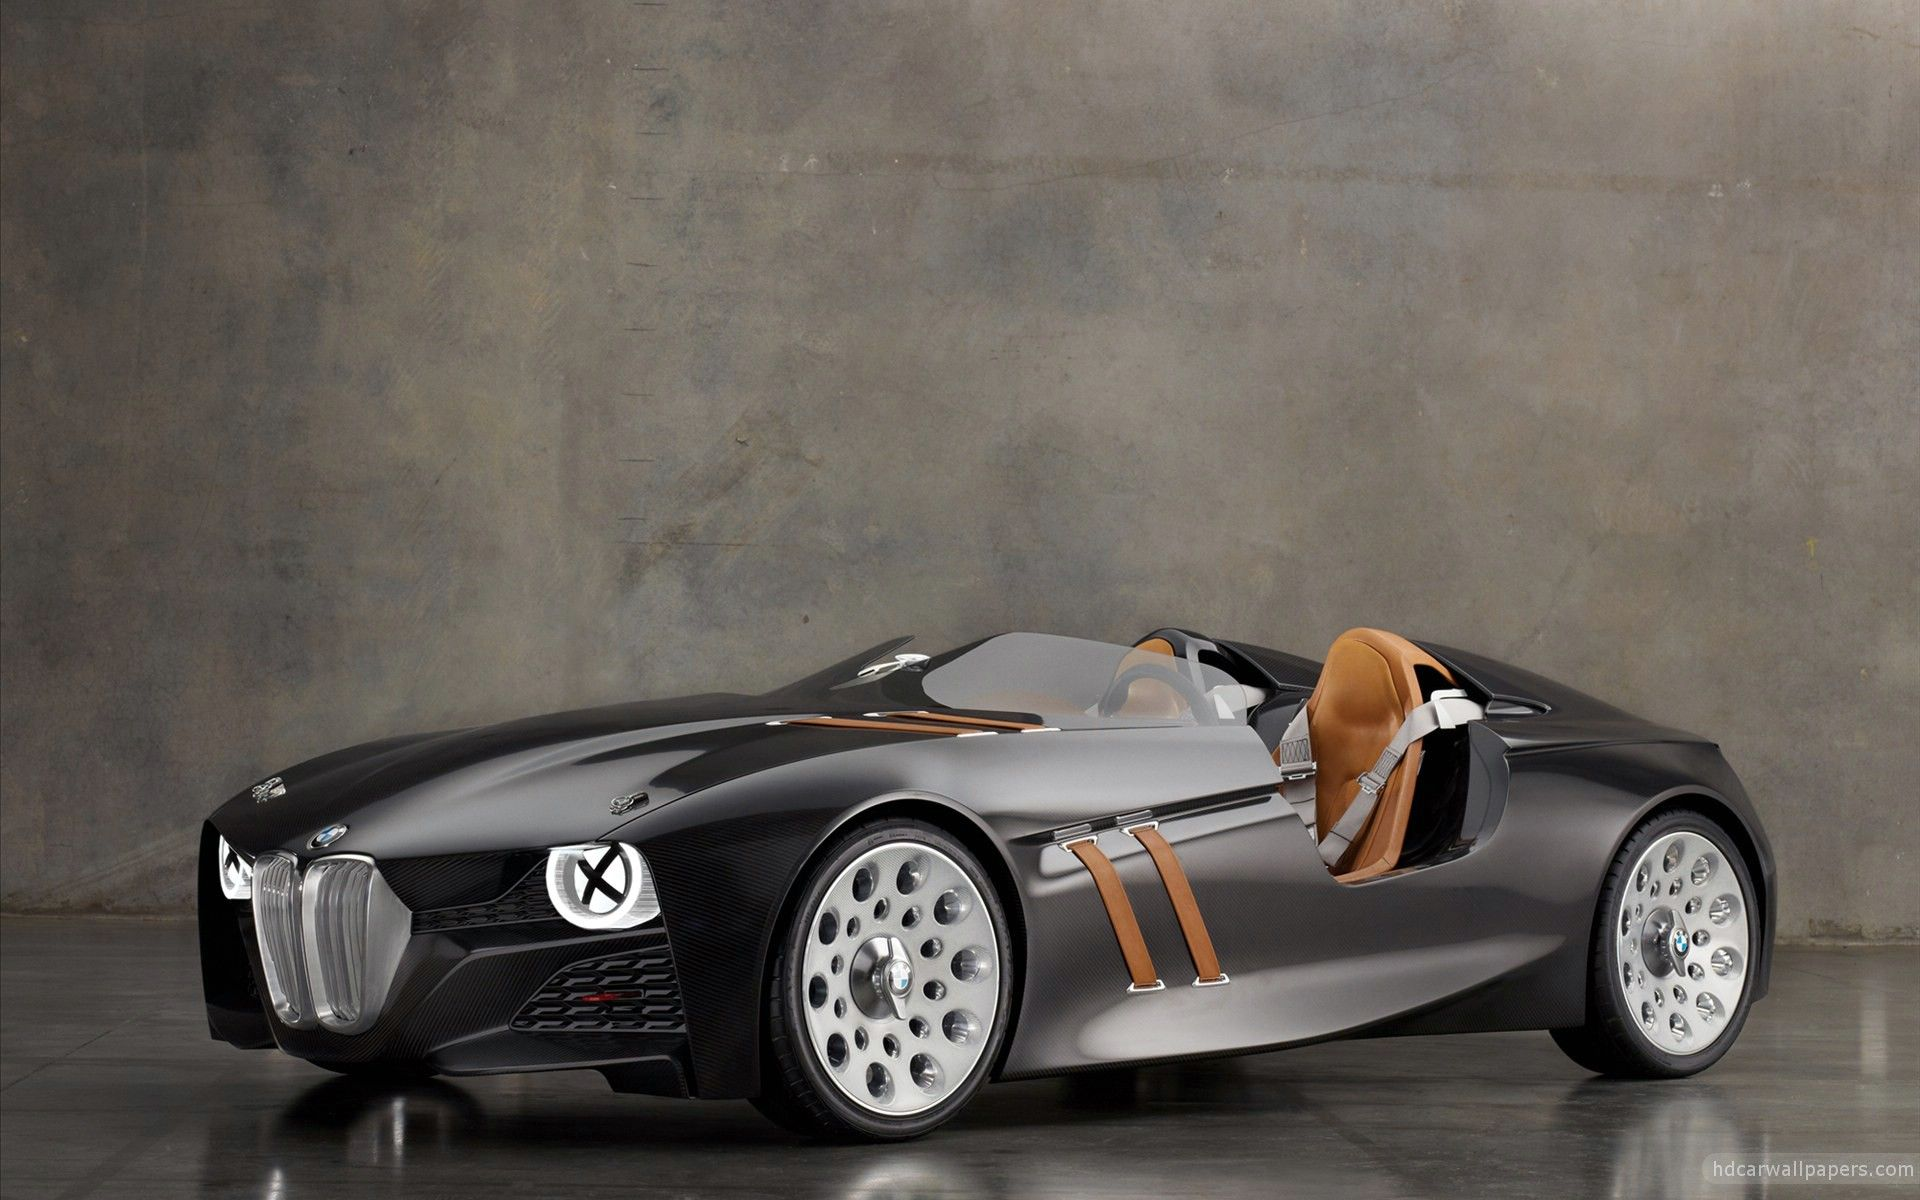 BMW Hommage One Of The Most Beautiful Cars Ever Made Open - Cool cars ever